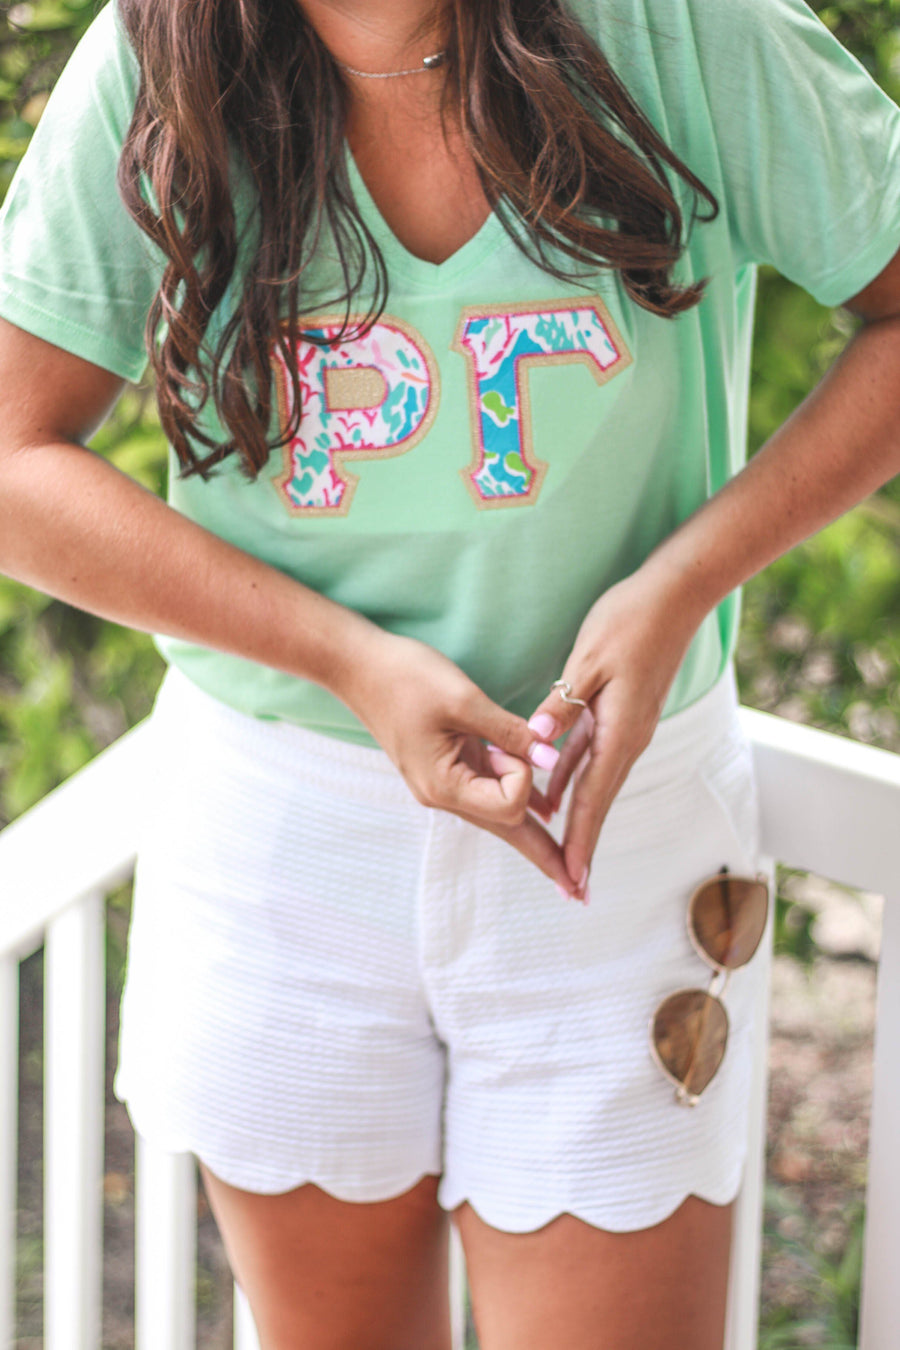 Lilly Greek Double Stitch Bella + Canvas Slouchy Tee V-Neck, , Sunny and Southern, - Sunny and Southern,